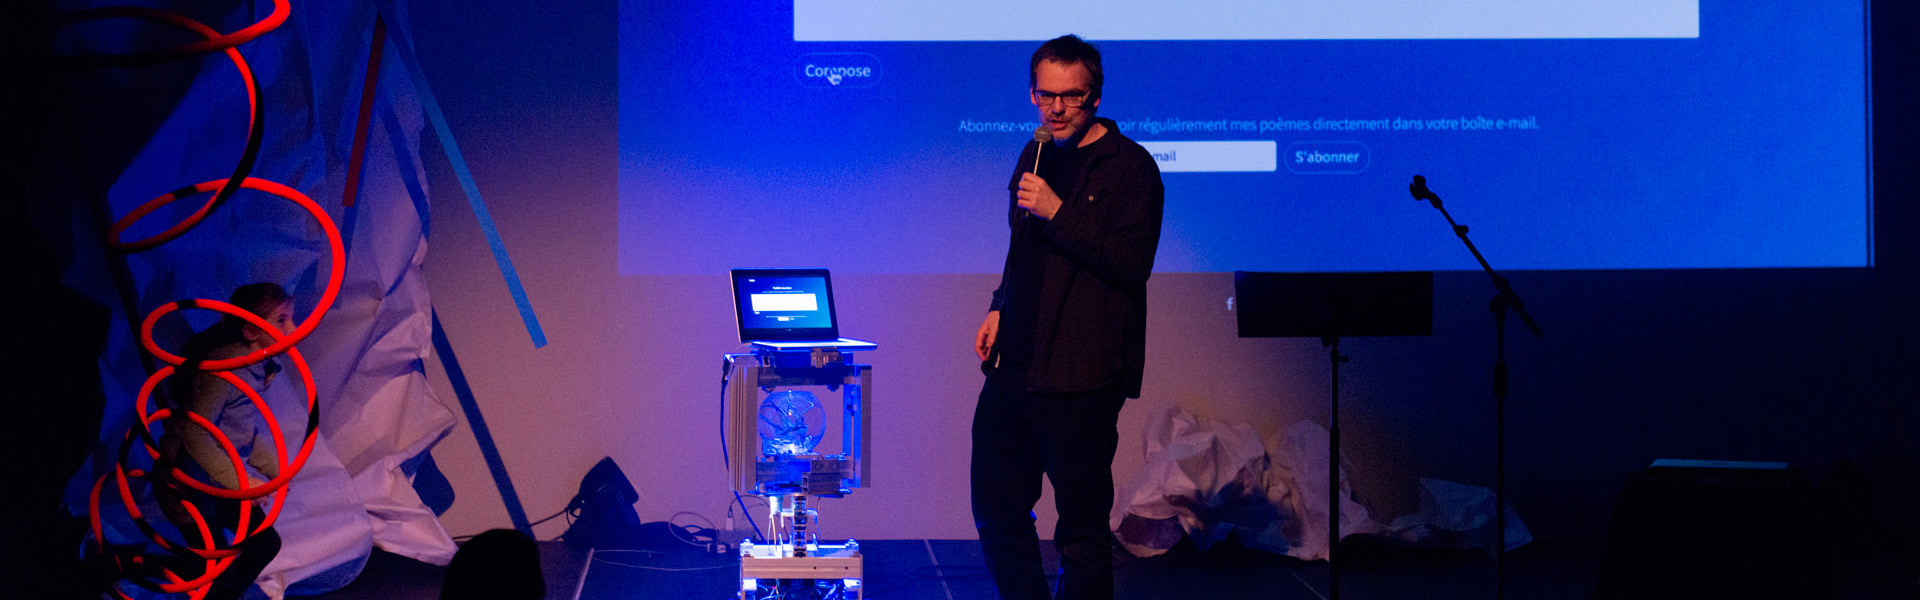 The conversational robot PaulBot is seen on stage under blue-tinted lighting, alongside its creator and in front of a screen displaying his poems in Chiac.